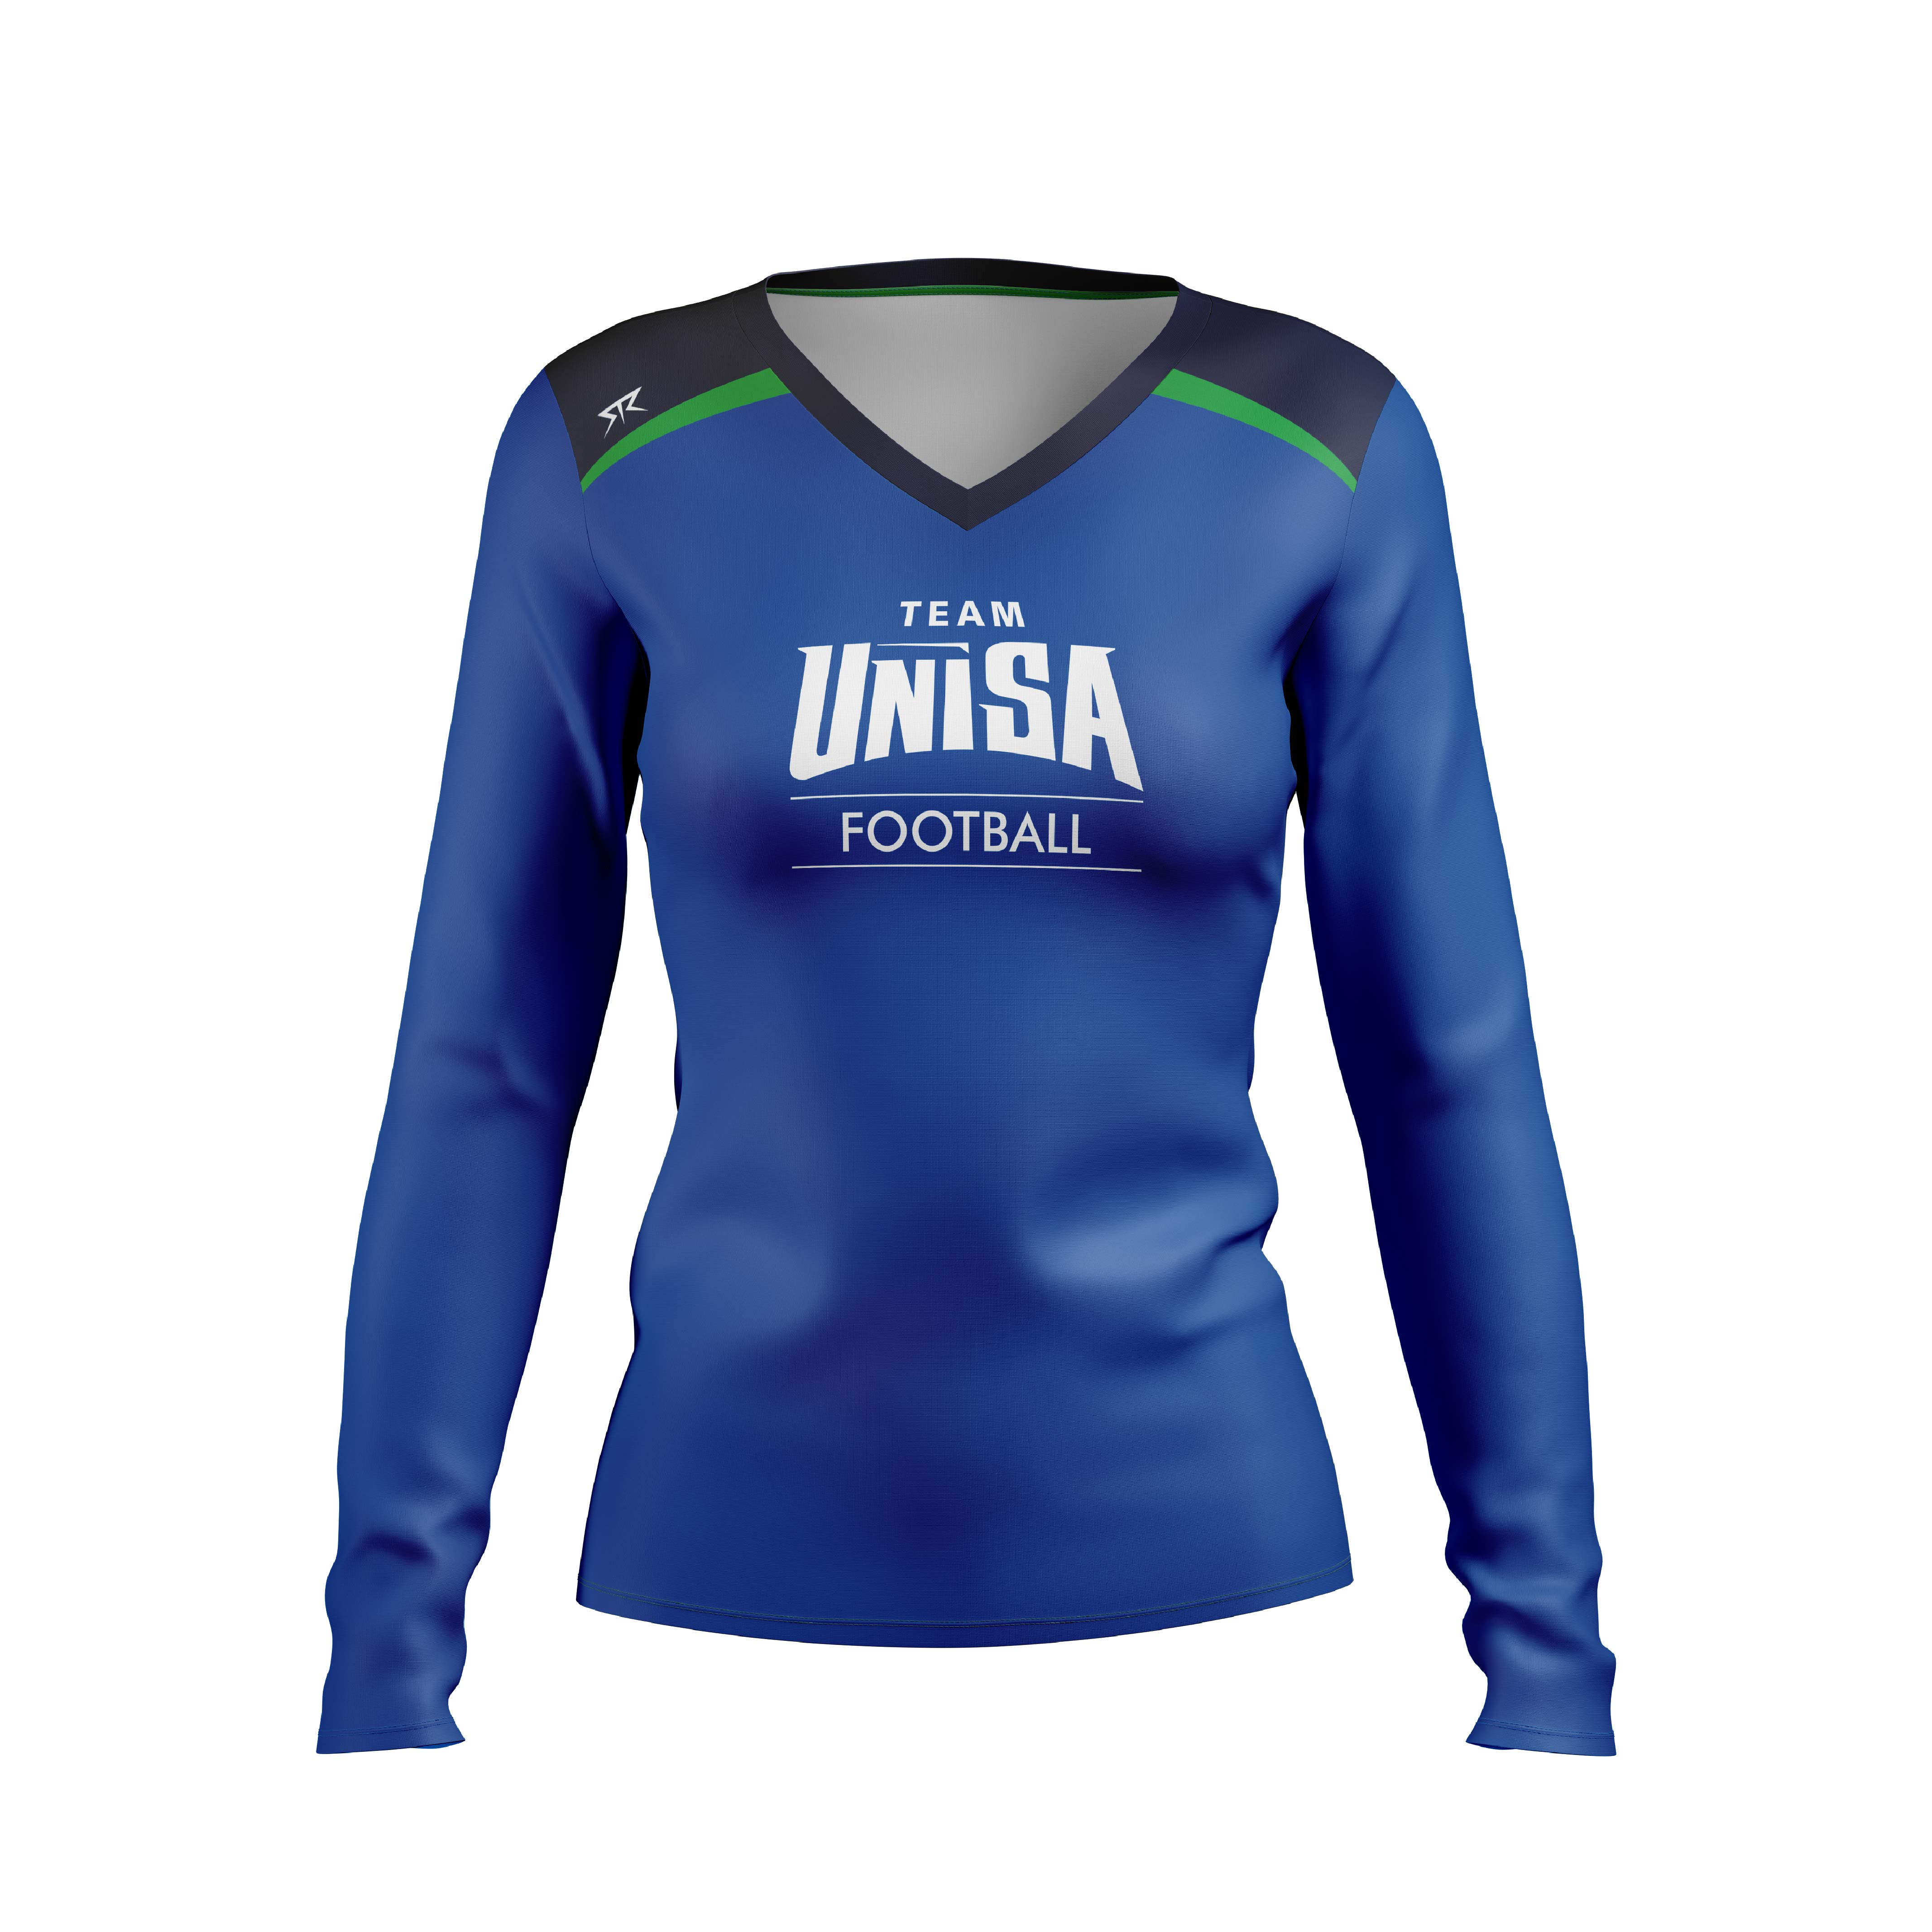 UniSA Women's Football Club Performance Long Sleeve Training Tee